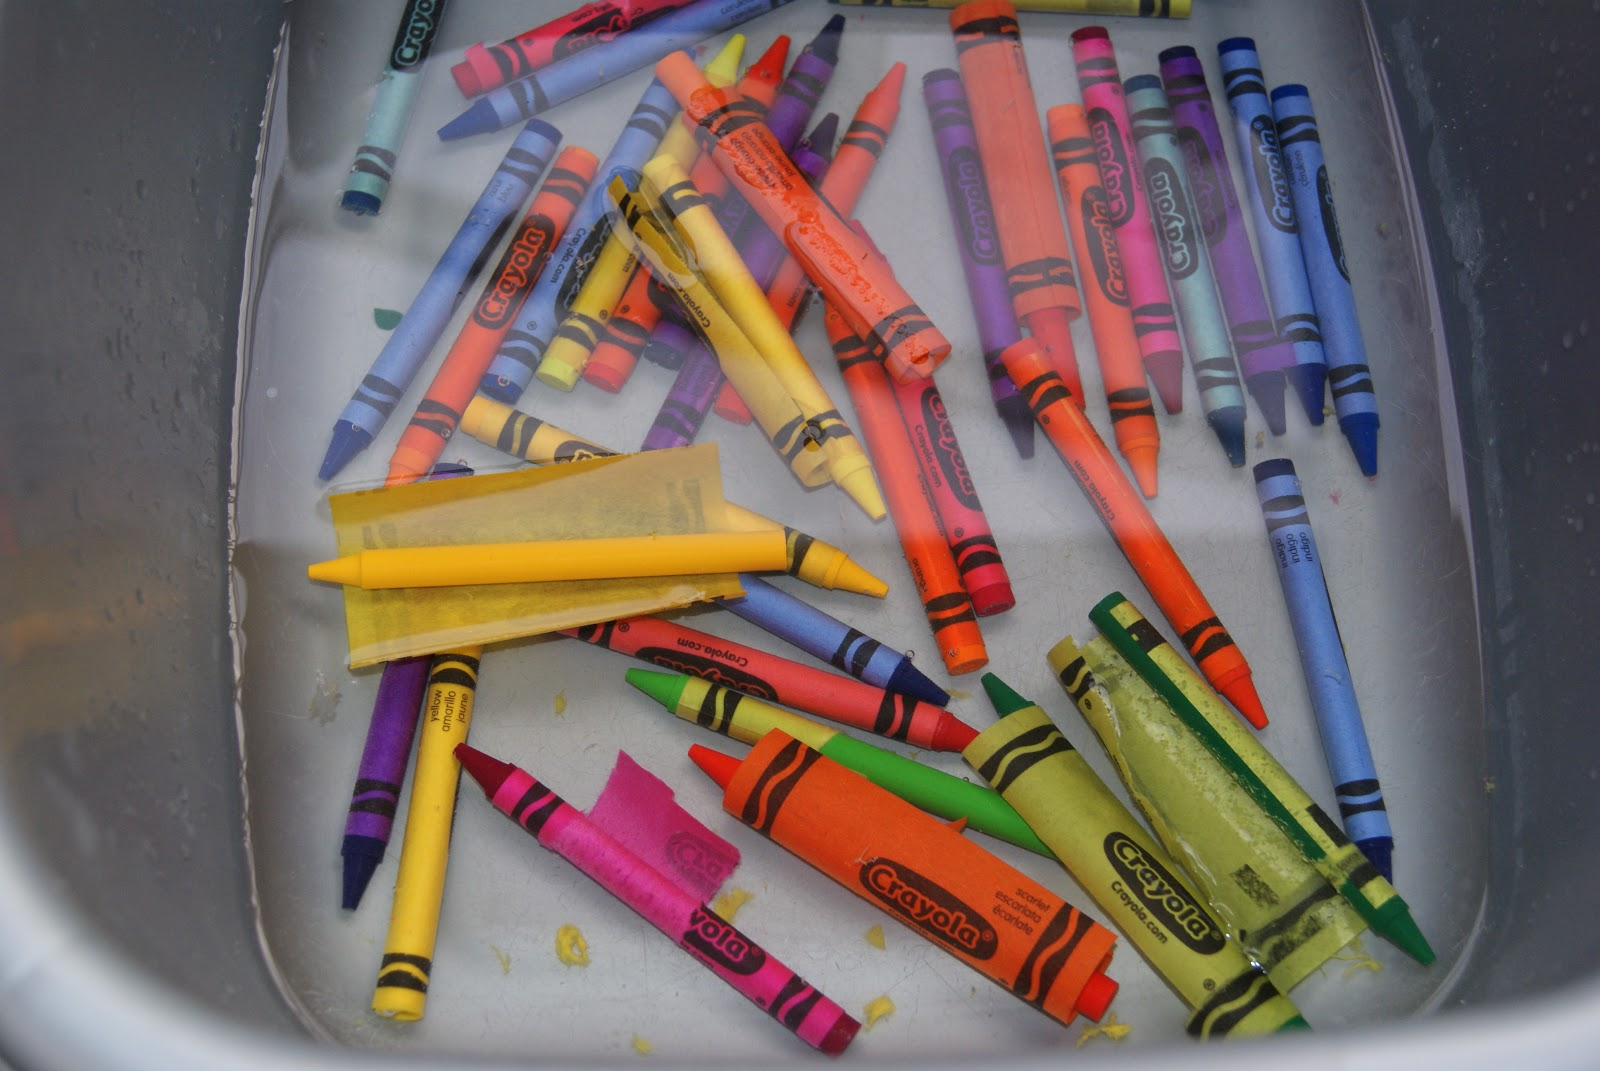 Crayon melting art images amp pictures becuo - And Wait For The Wrappers To Come Off Themselves